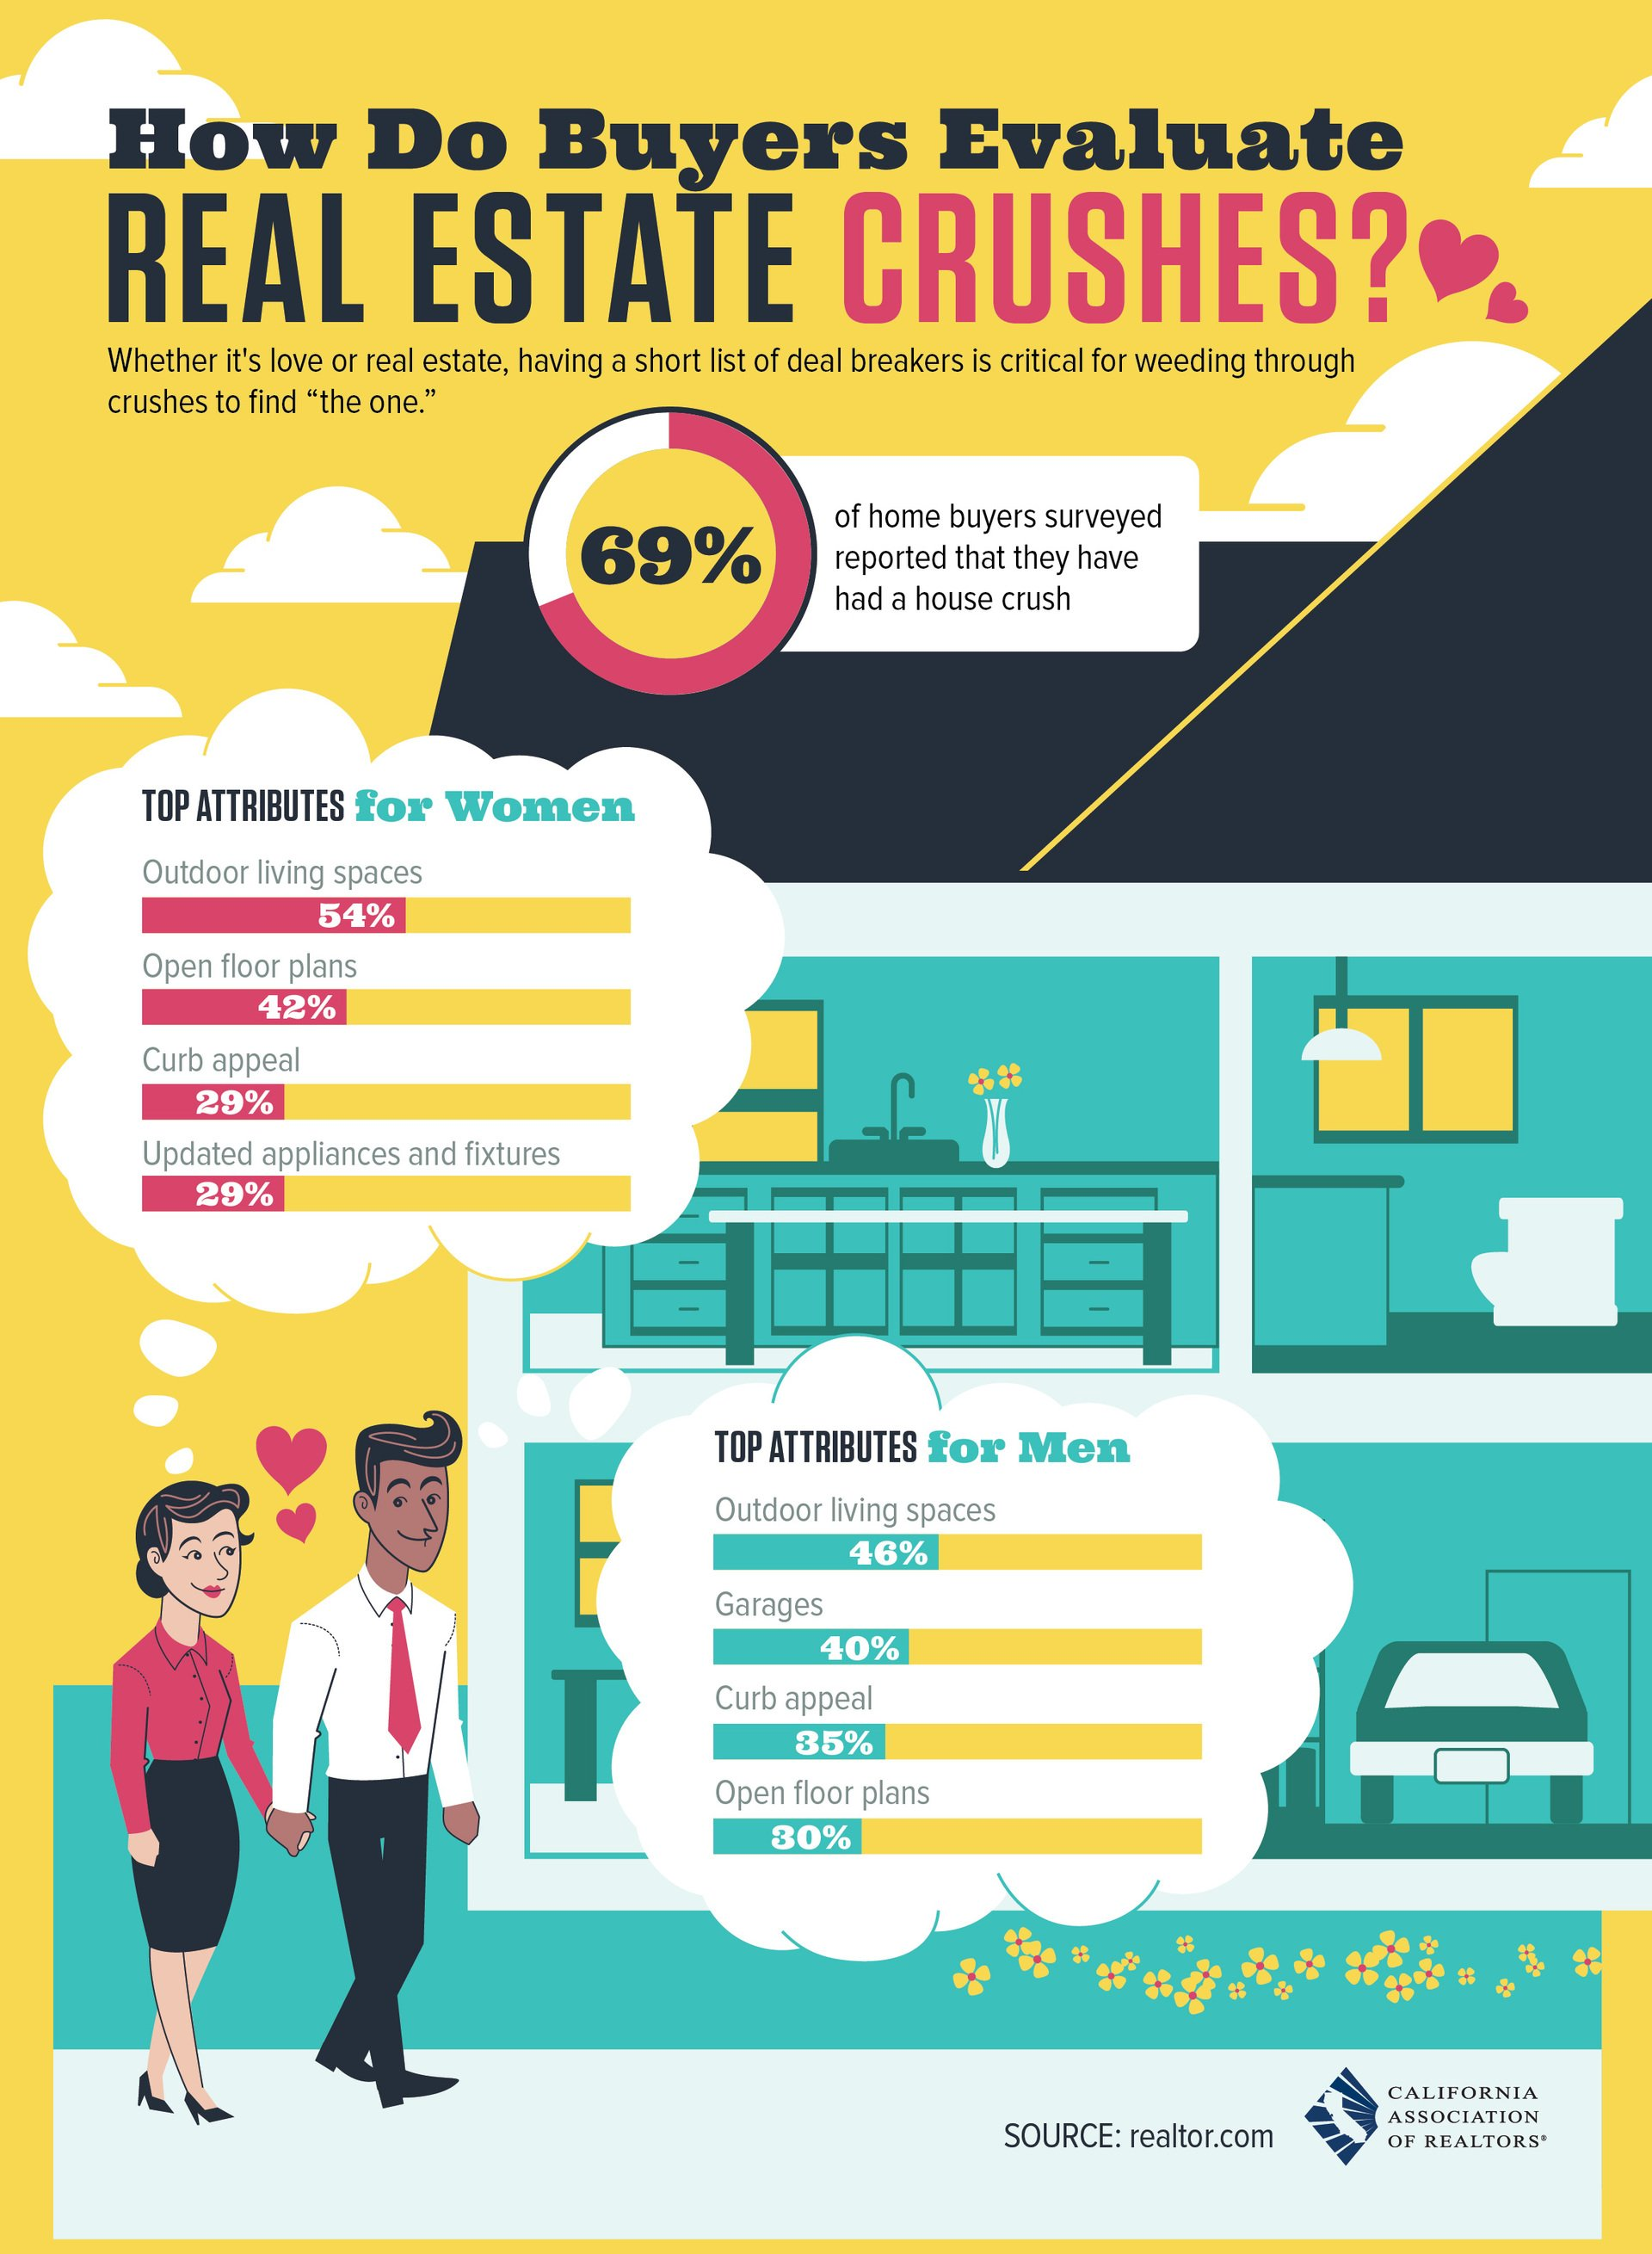 How Do Buyers Evaluate Real Estate Crushes and Pick Their Dream Home?